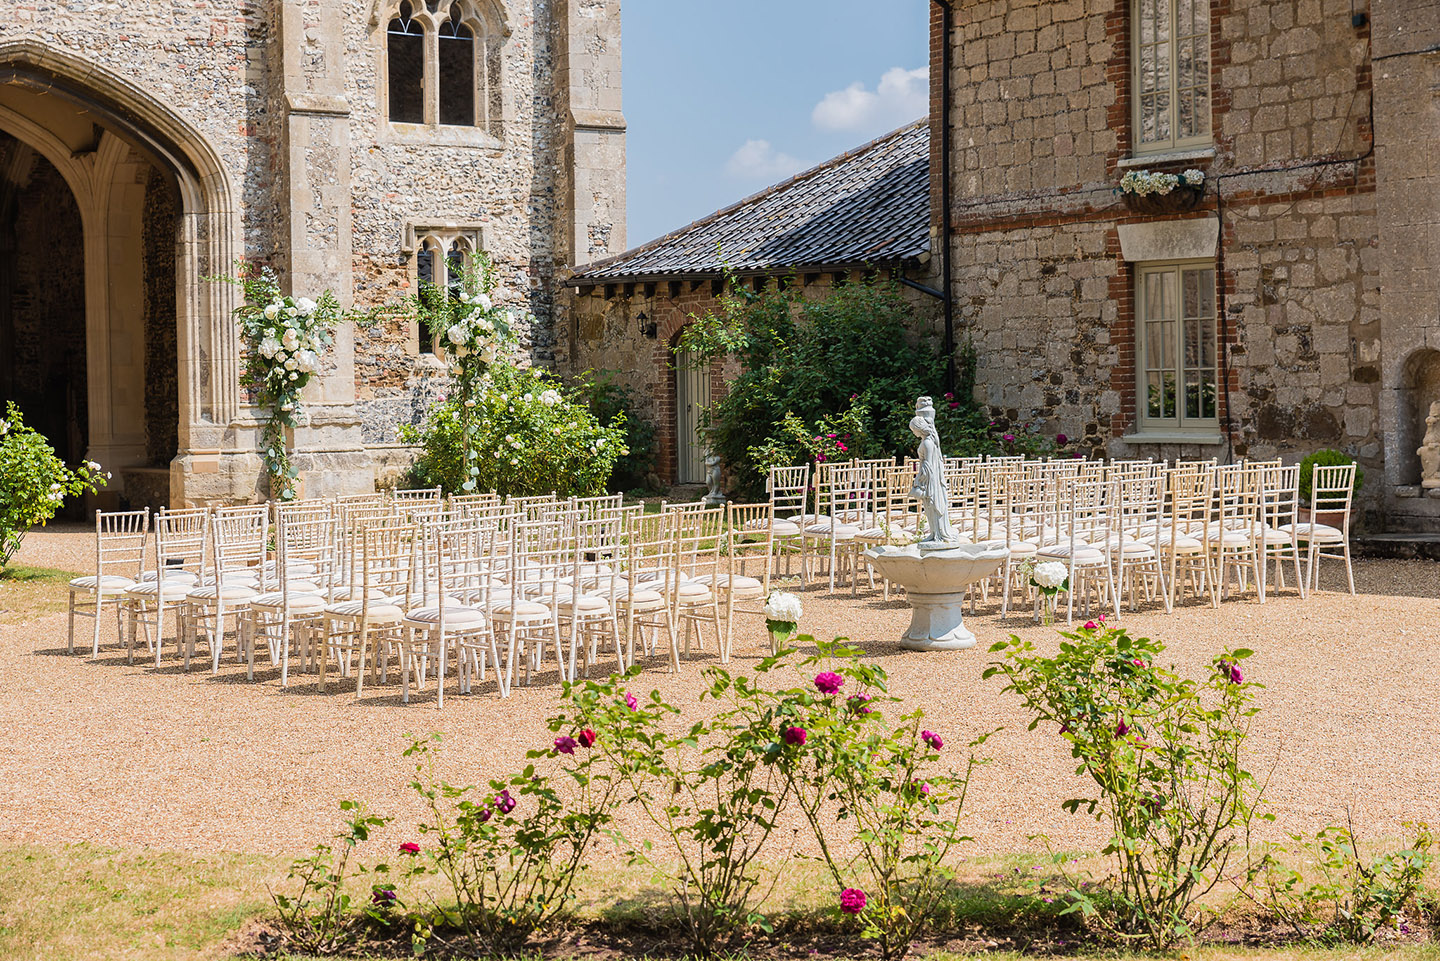 The rose garden at Pentney Abbey is the perfect setting for an outdoor wedding ceremony